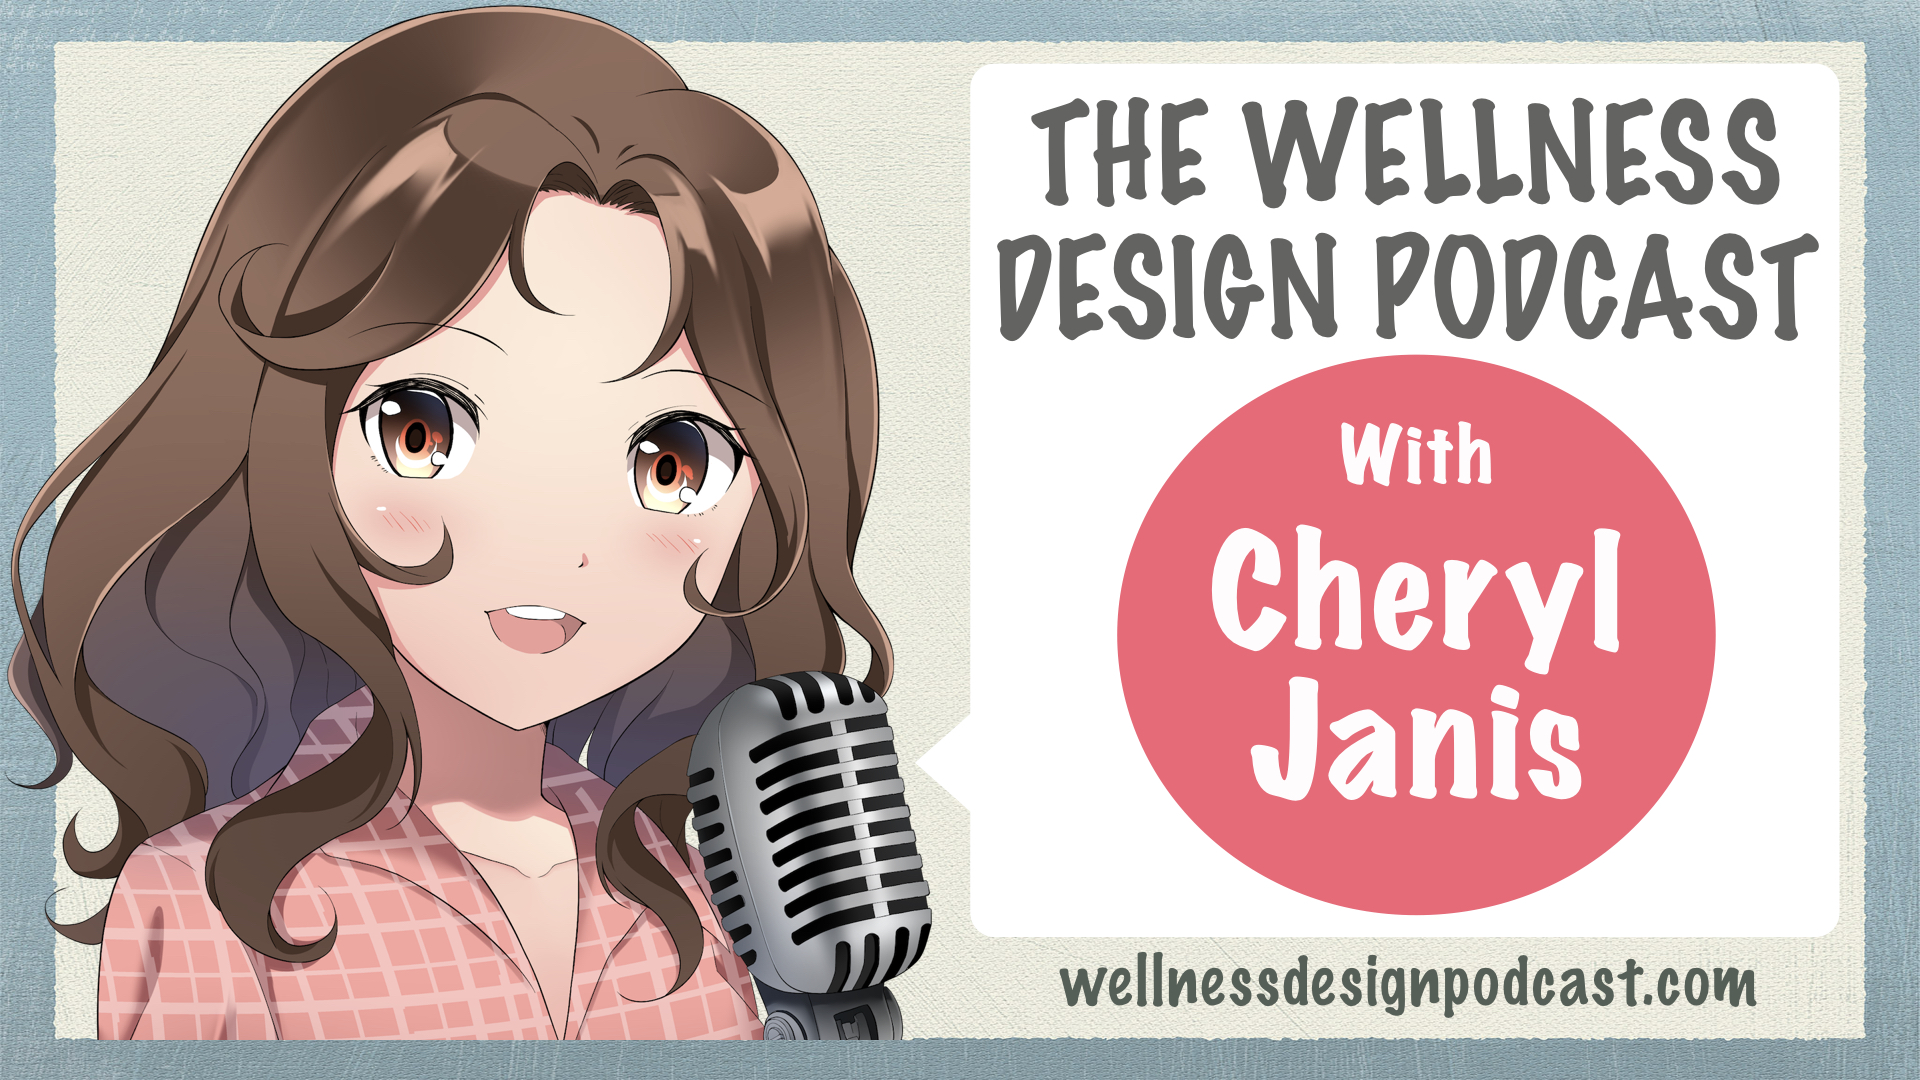 The 20wellness 20design 20podcast 20cheryl 20janis 20designs healthcare interior design